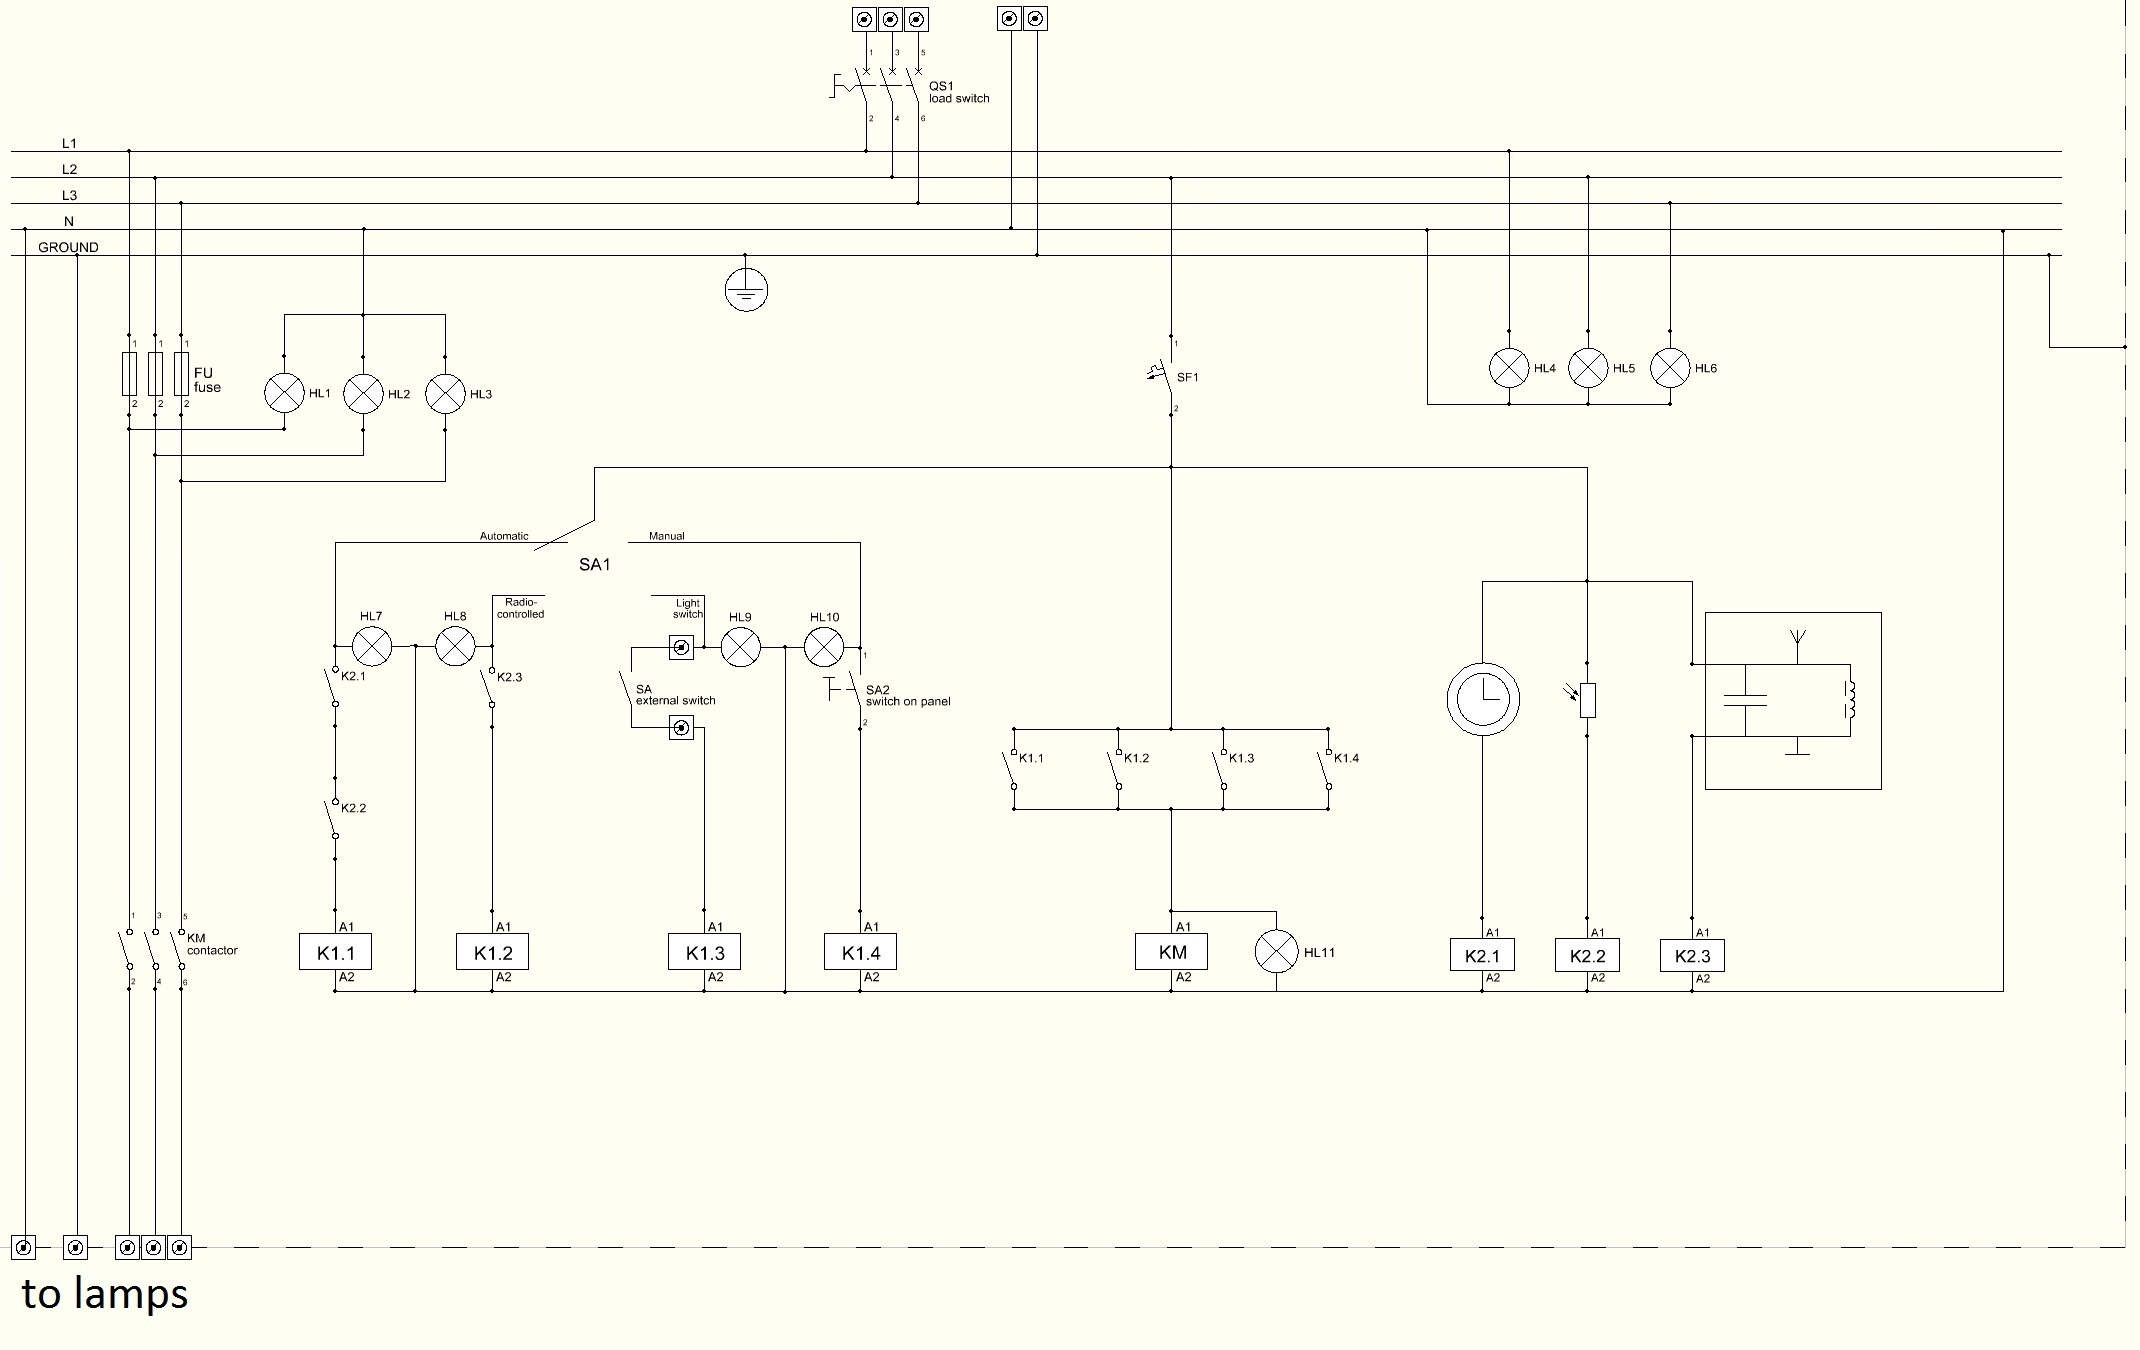 Control Wiring Diagram - Wiring Diagram Data on troubleshooting diagrams, industrial tools, industrial electrical diagrams, industrial ventilation diagrams, industrial design diagrams, garage door opener control diagrams, industrial air conditioning, plc diagrams, industrial pump diagrams, power distribution diagrams, data diagrams, industrial fan diagram, fluid power diagrams,